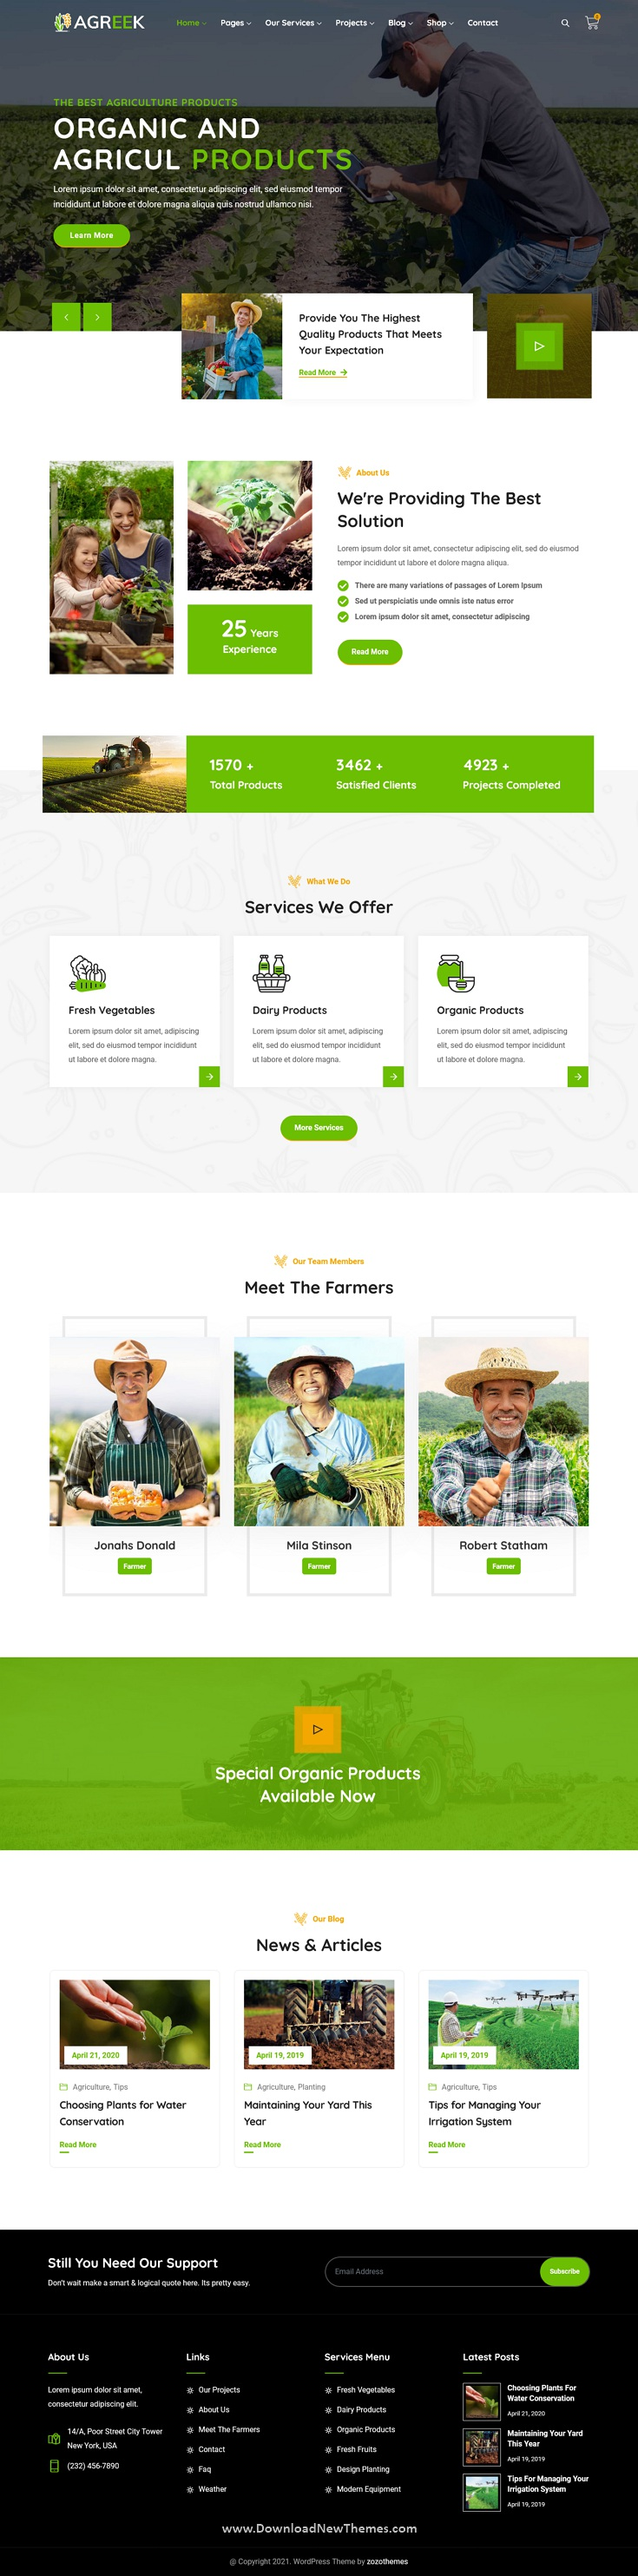 Agriculture and Organic Food WordPress Theme